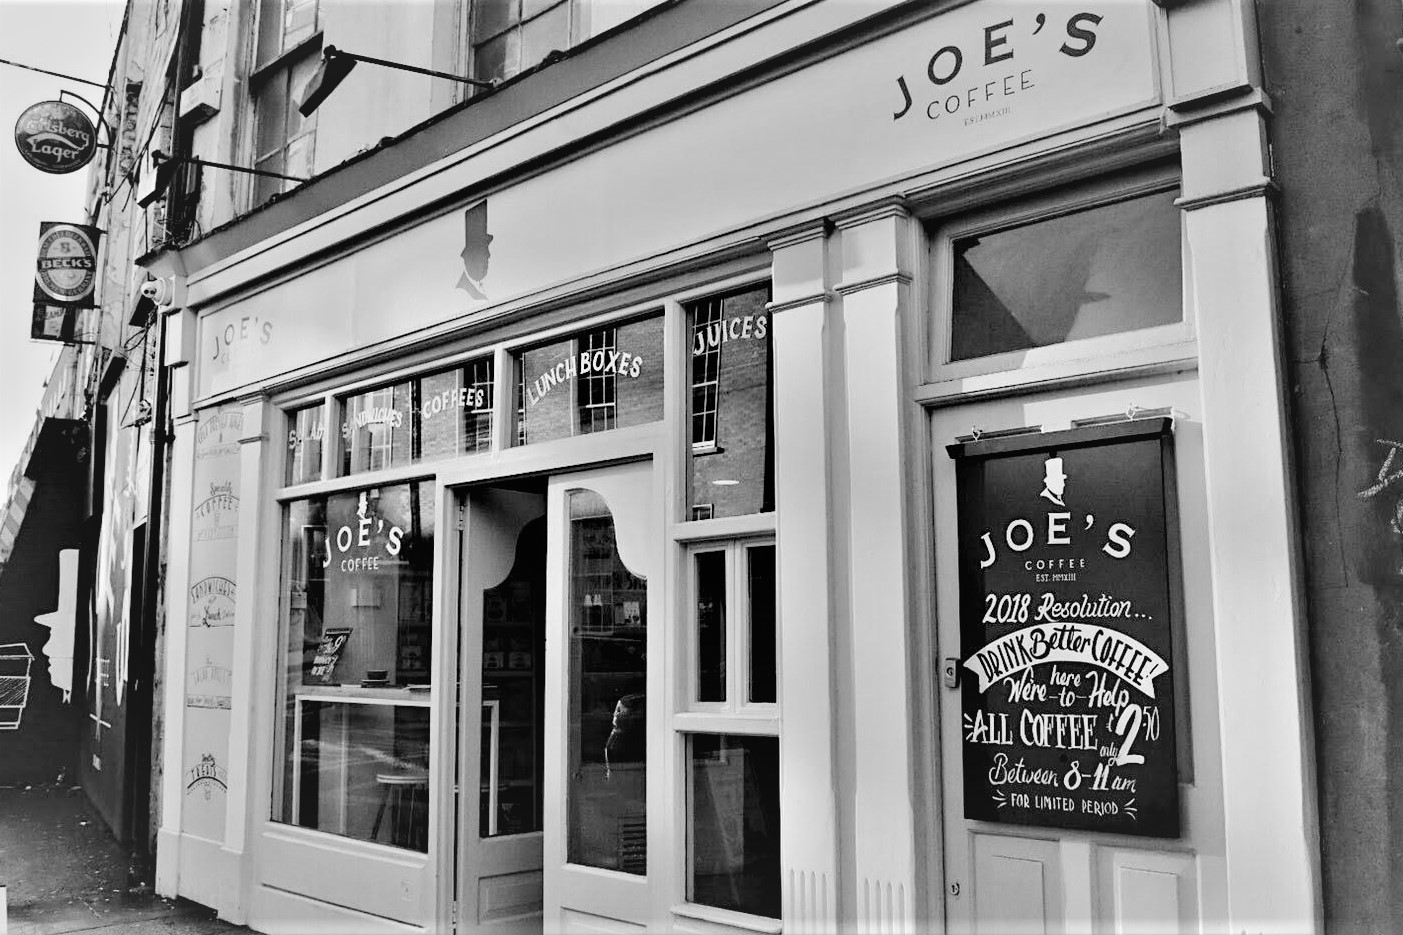 Joes Leeson St January 2018 edited.jpg